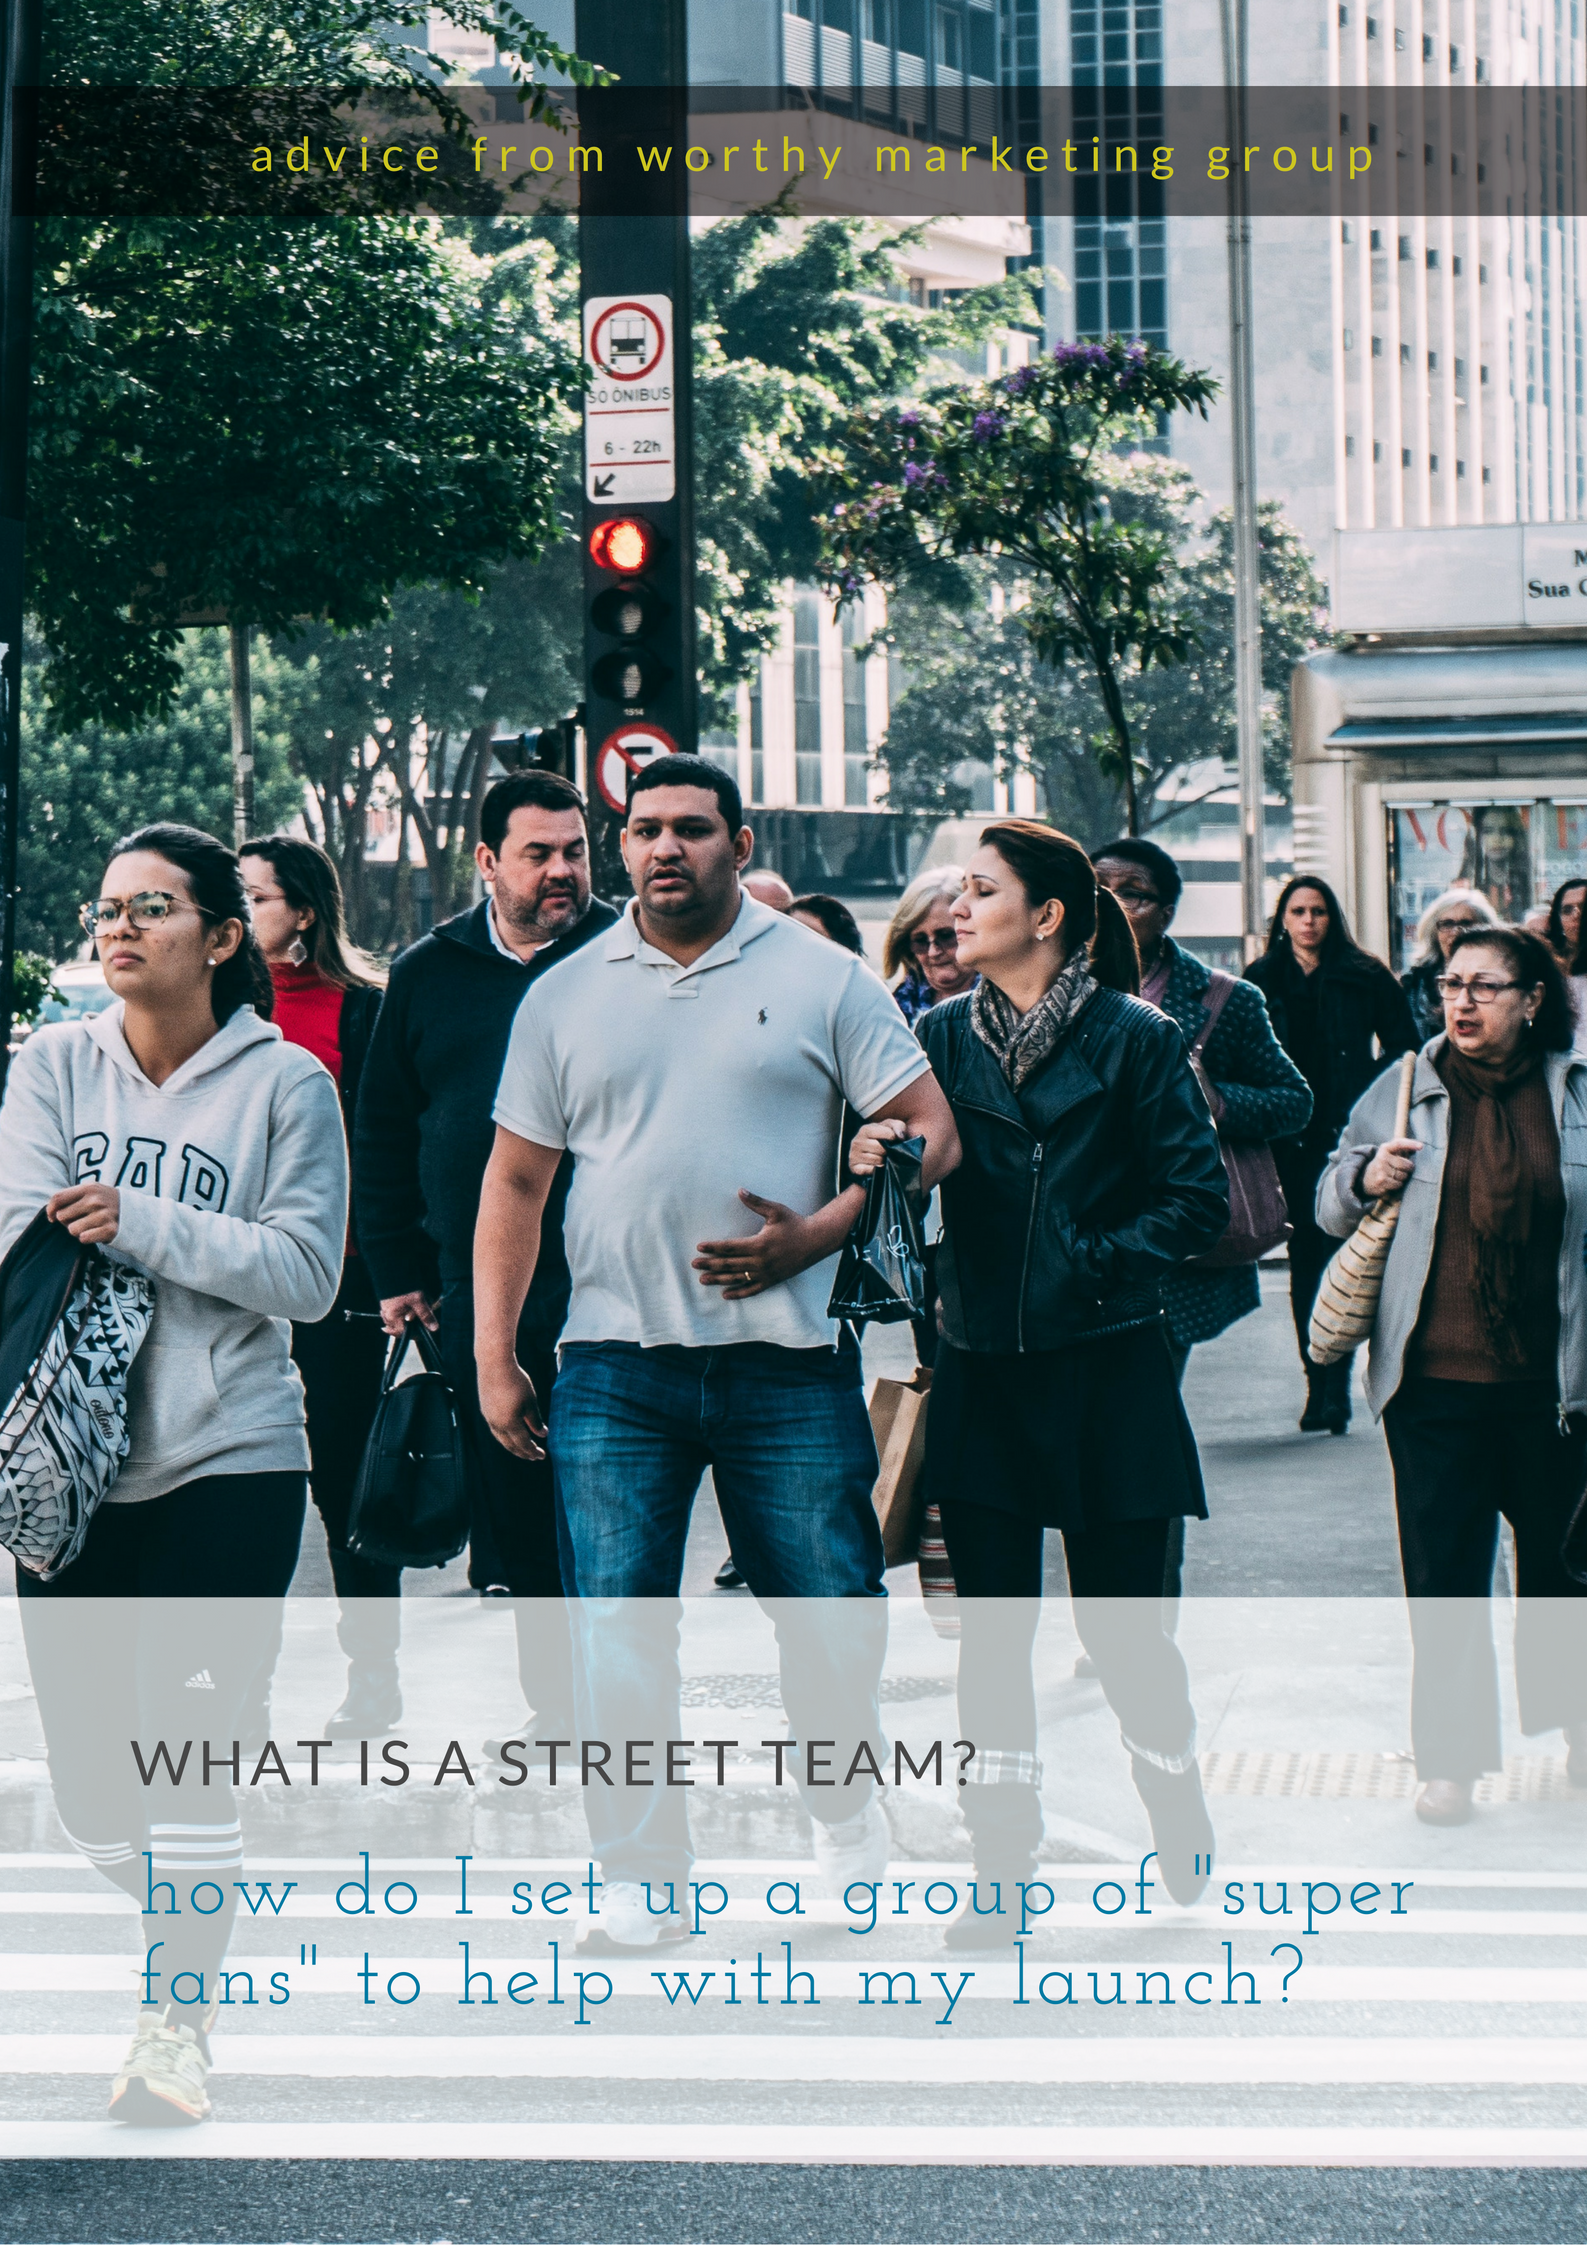 What's a Street Team? And how do I make one? What assets should I share? | The Worthy Marketing Group Blog